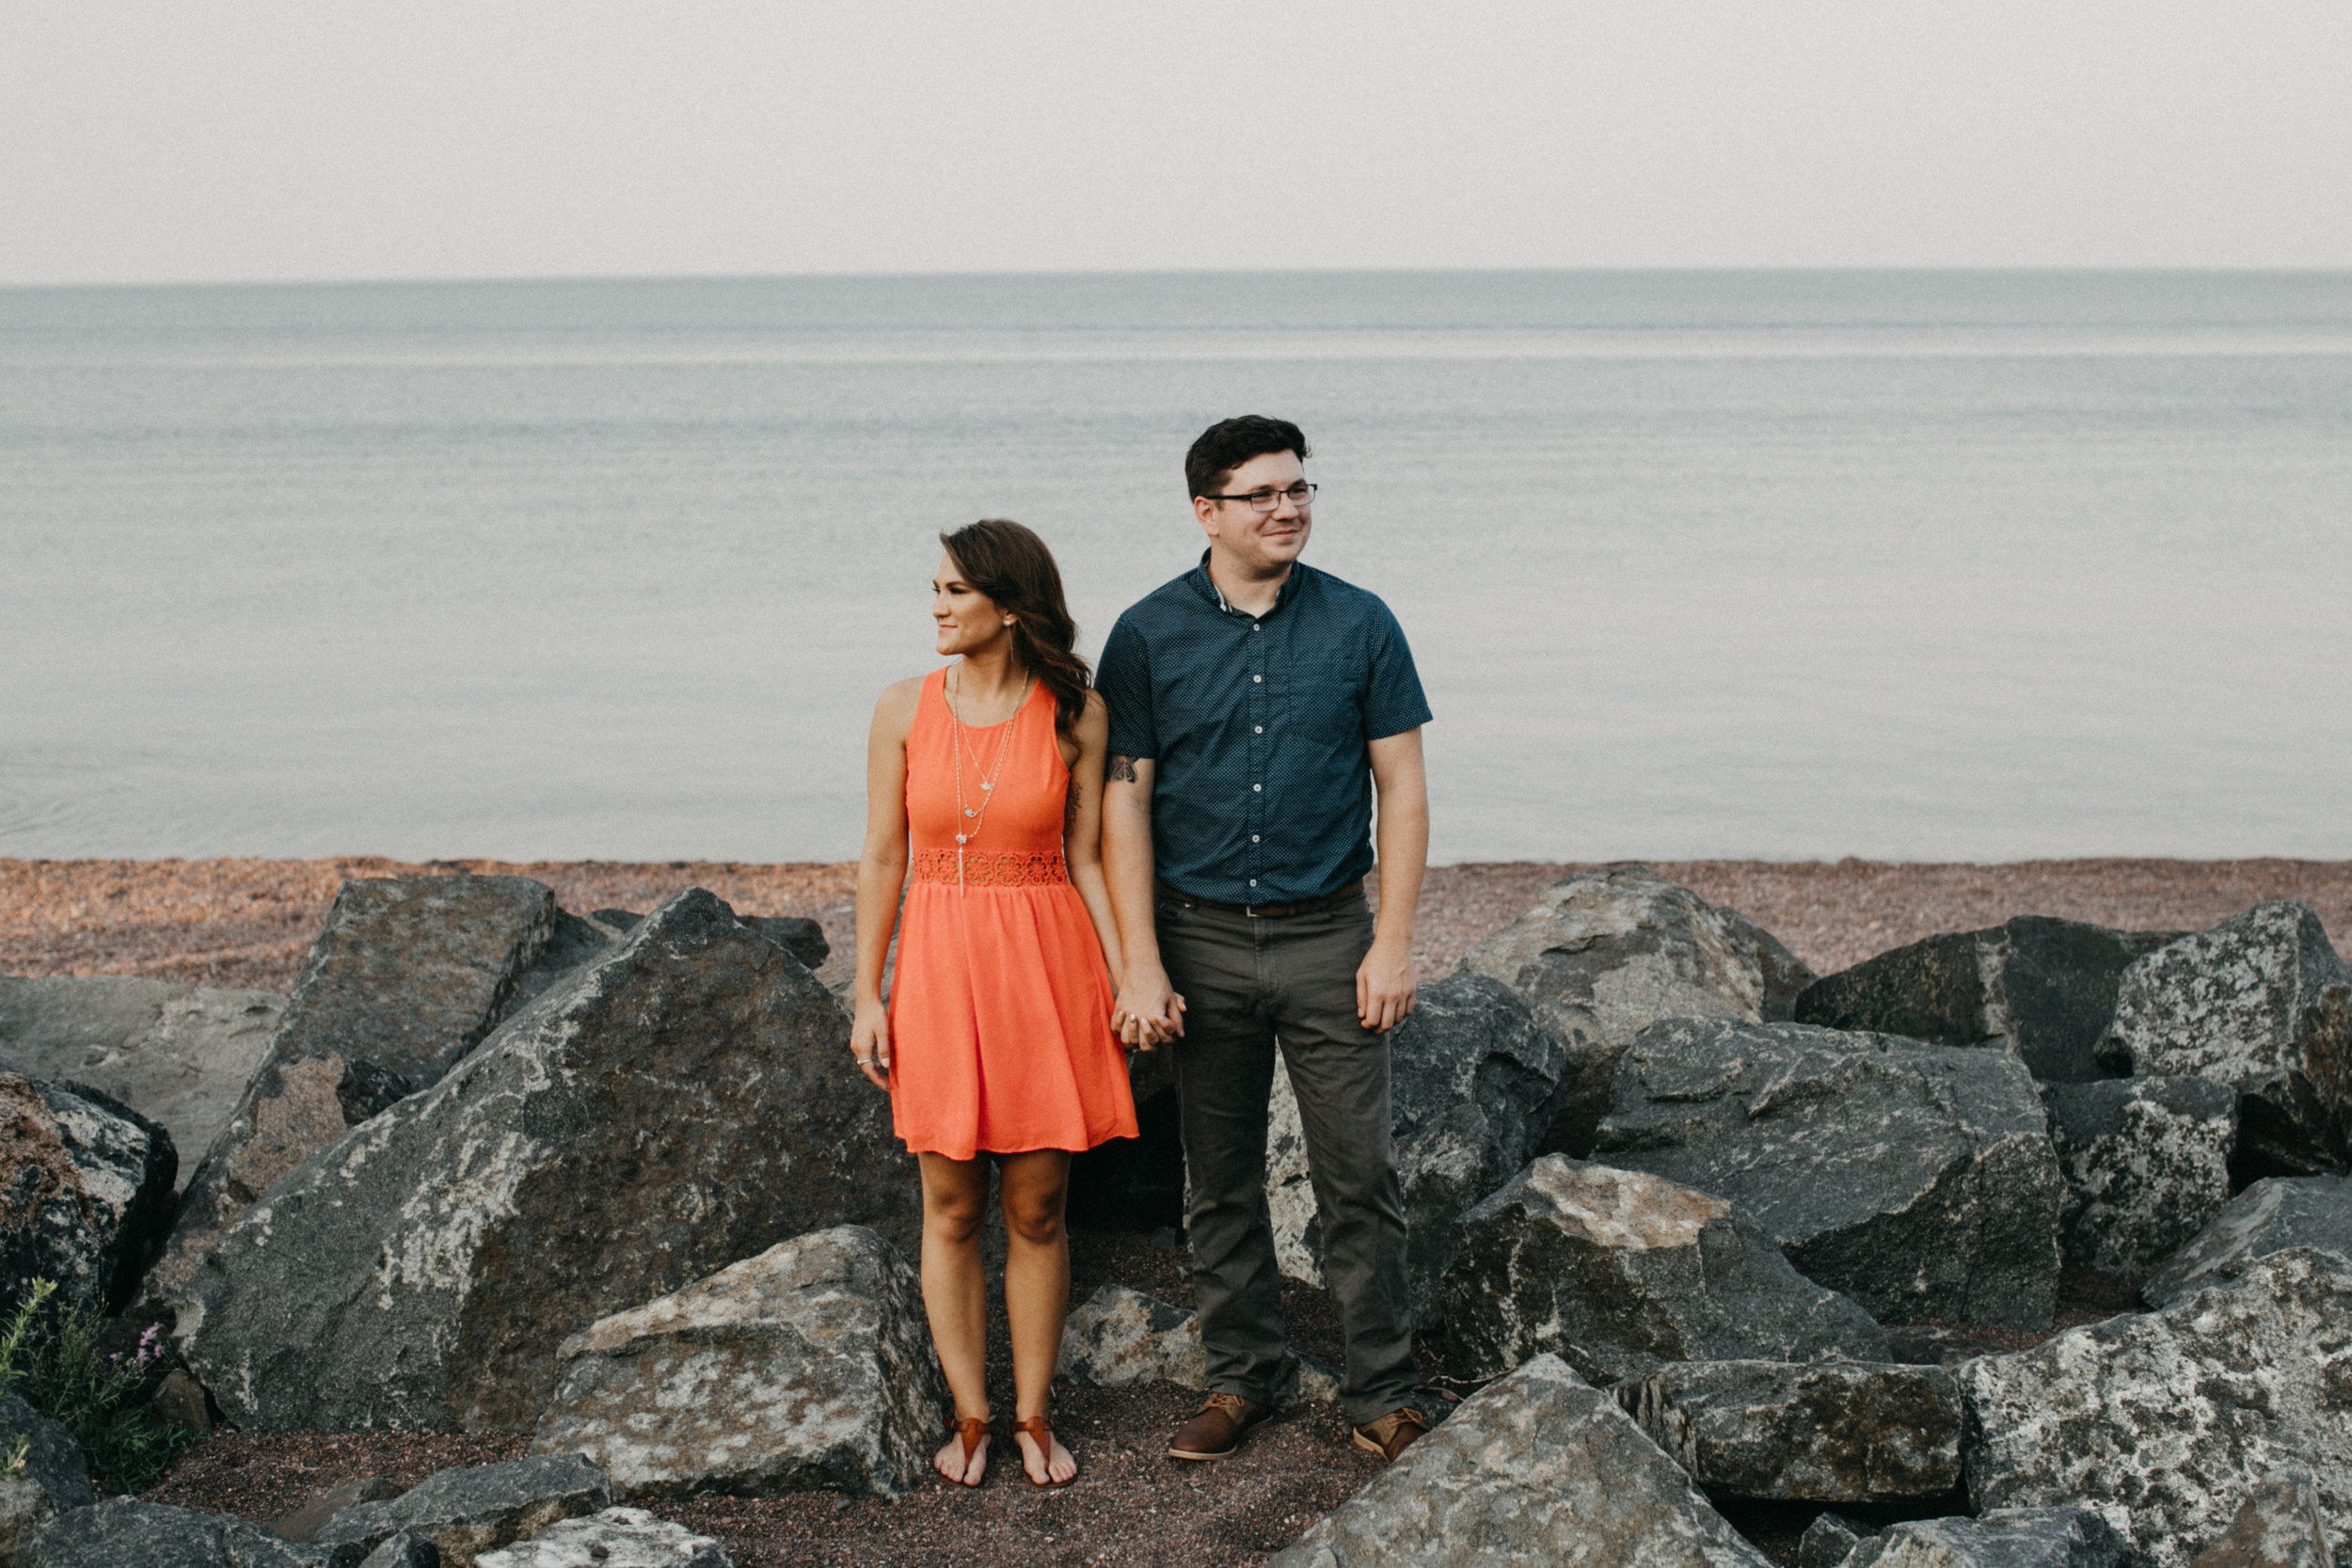 Unconventional engagement photography on the north shore photographed by Duluth wedding photographer, Britt DeZeeuw